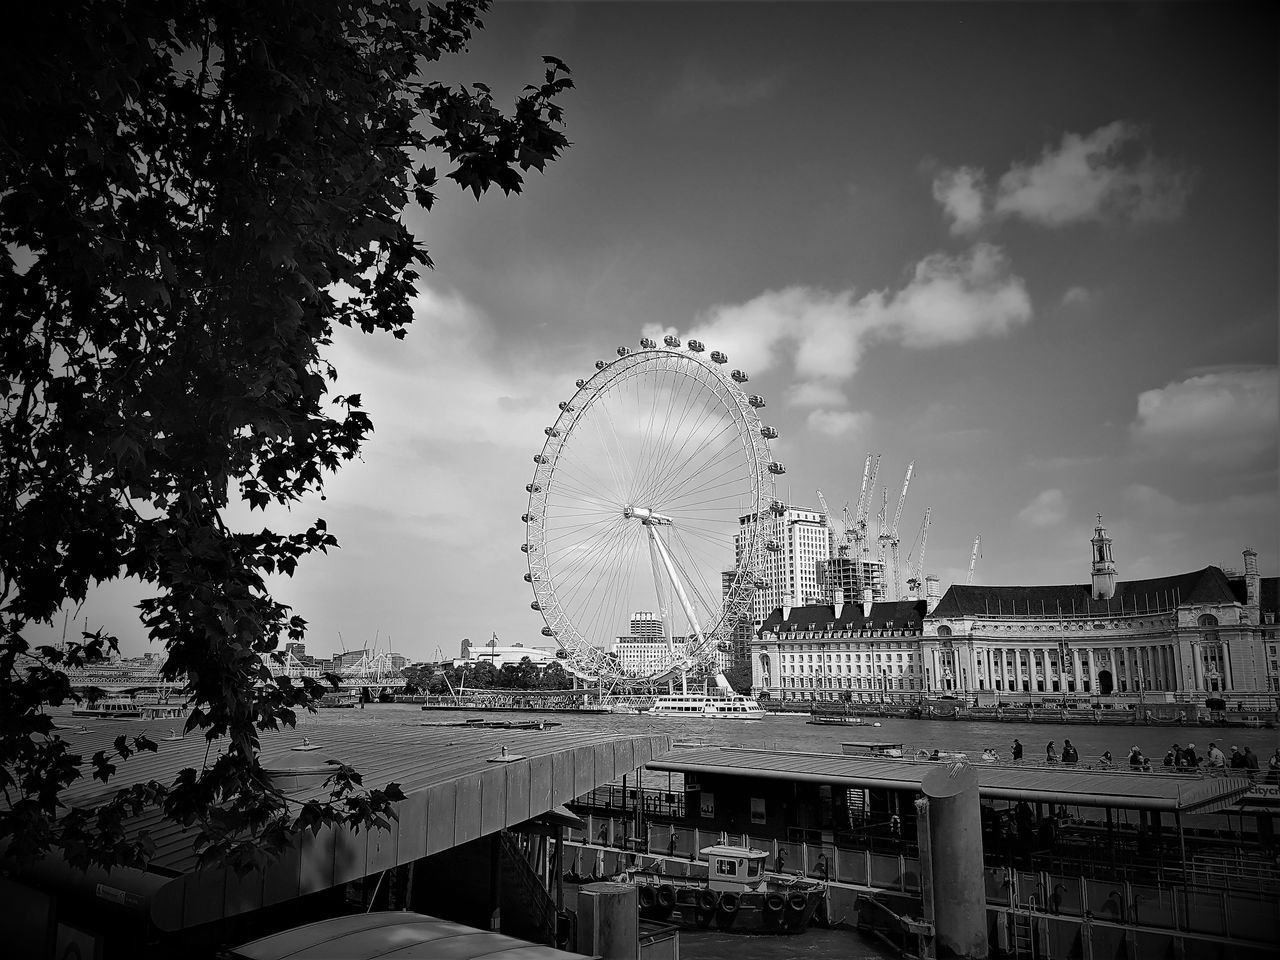 Architecture Big Wheel Black And White Built Structure City City Of Westminster Cloudy Sky Day London London Eye London Eye Tourist Attraction London Eye, London London Eye🎡 London Lifestyle London Trip Nature No People Outdoors River Thames River Thames London Sky Tourist Attraction  Tourist Destination Travel Destinations Tree